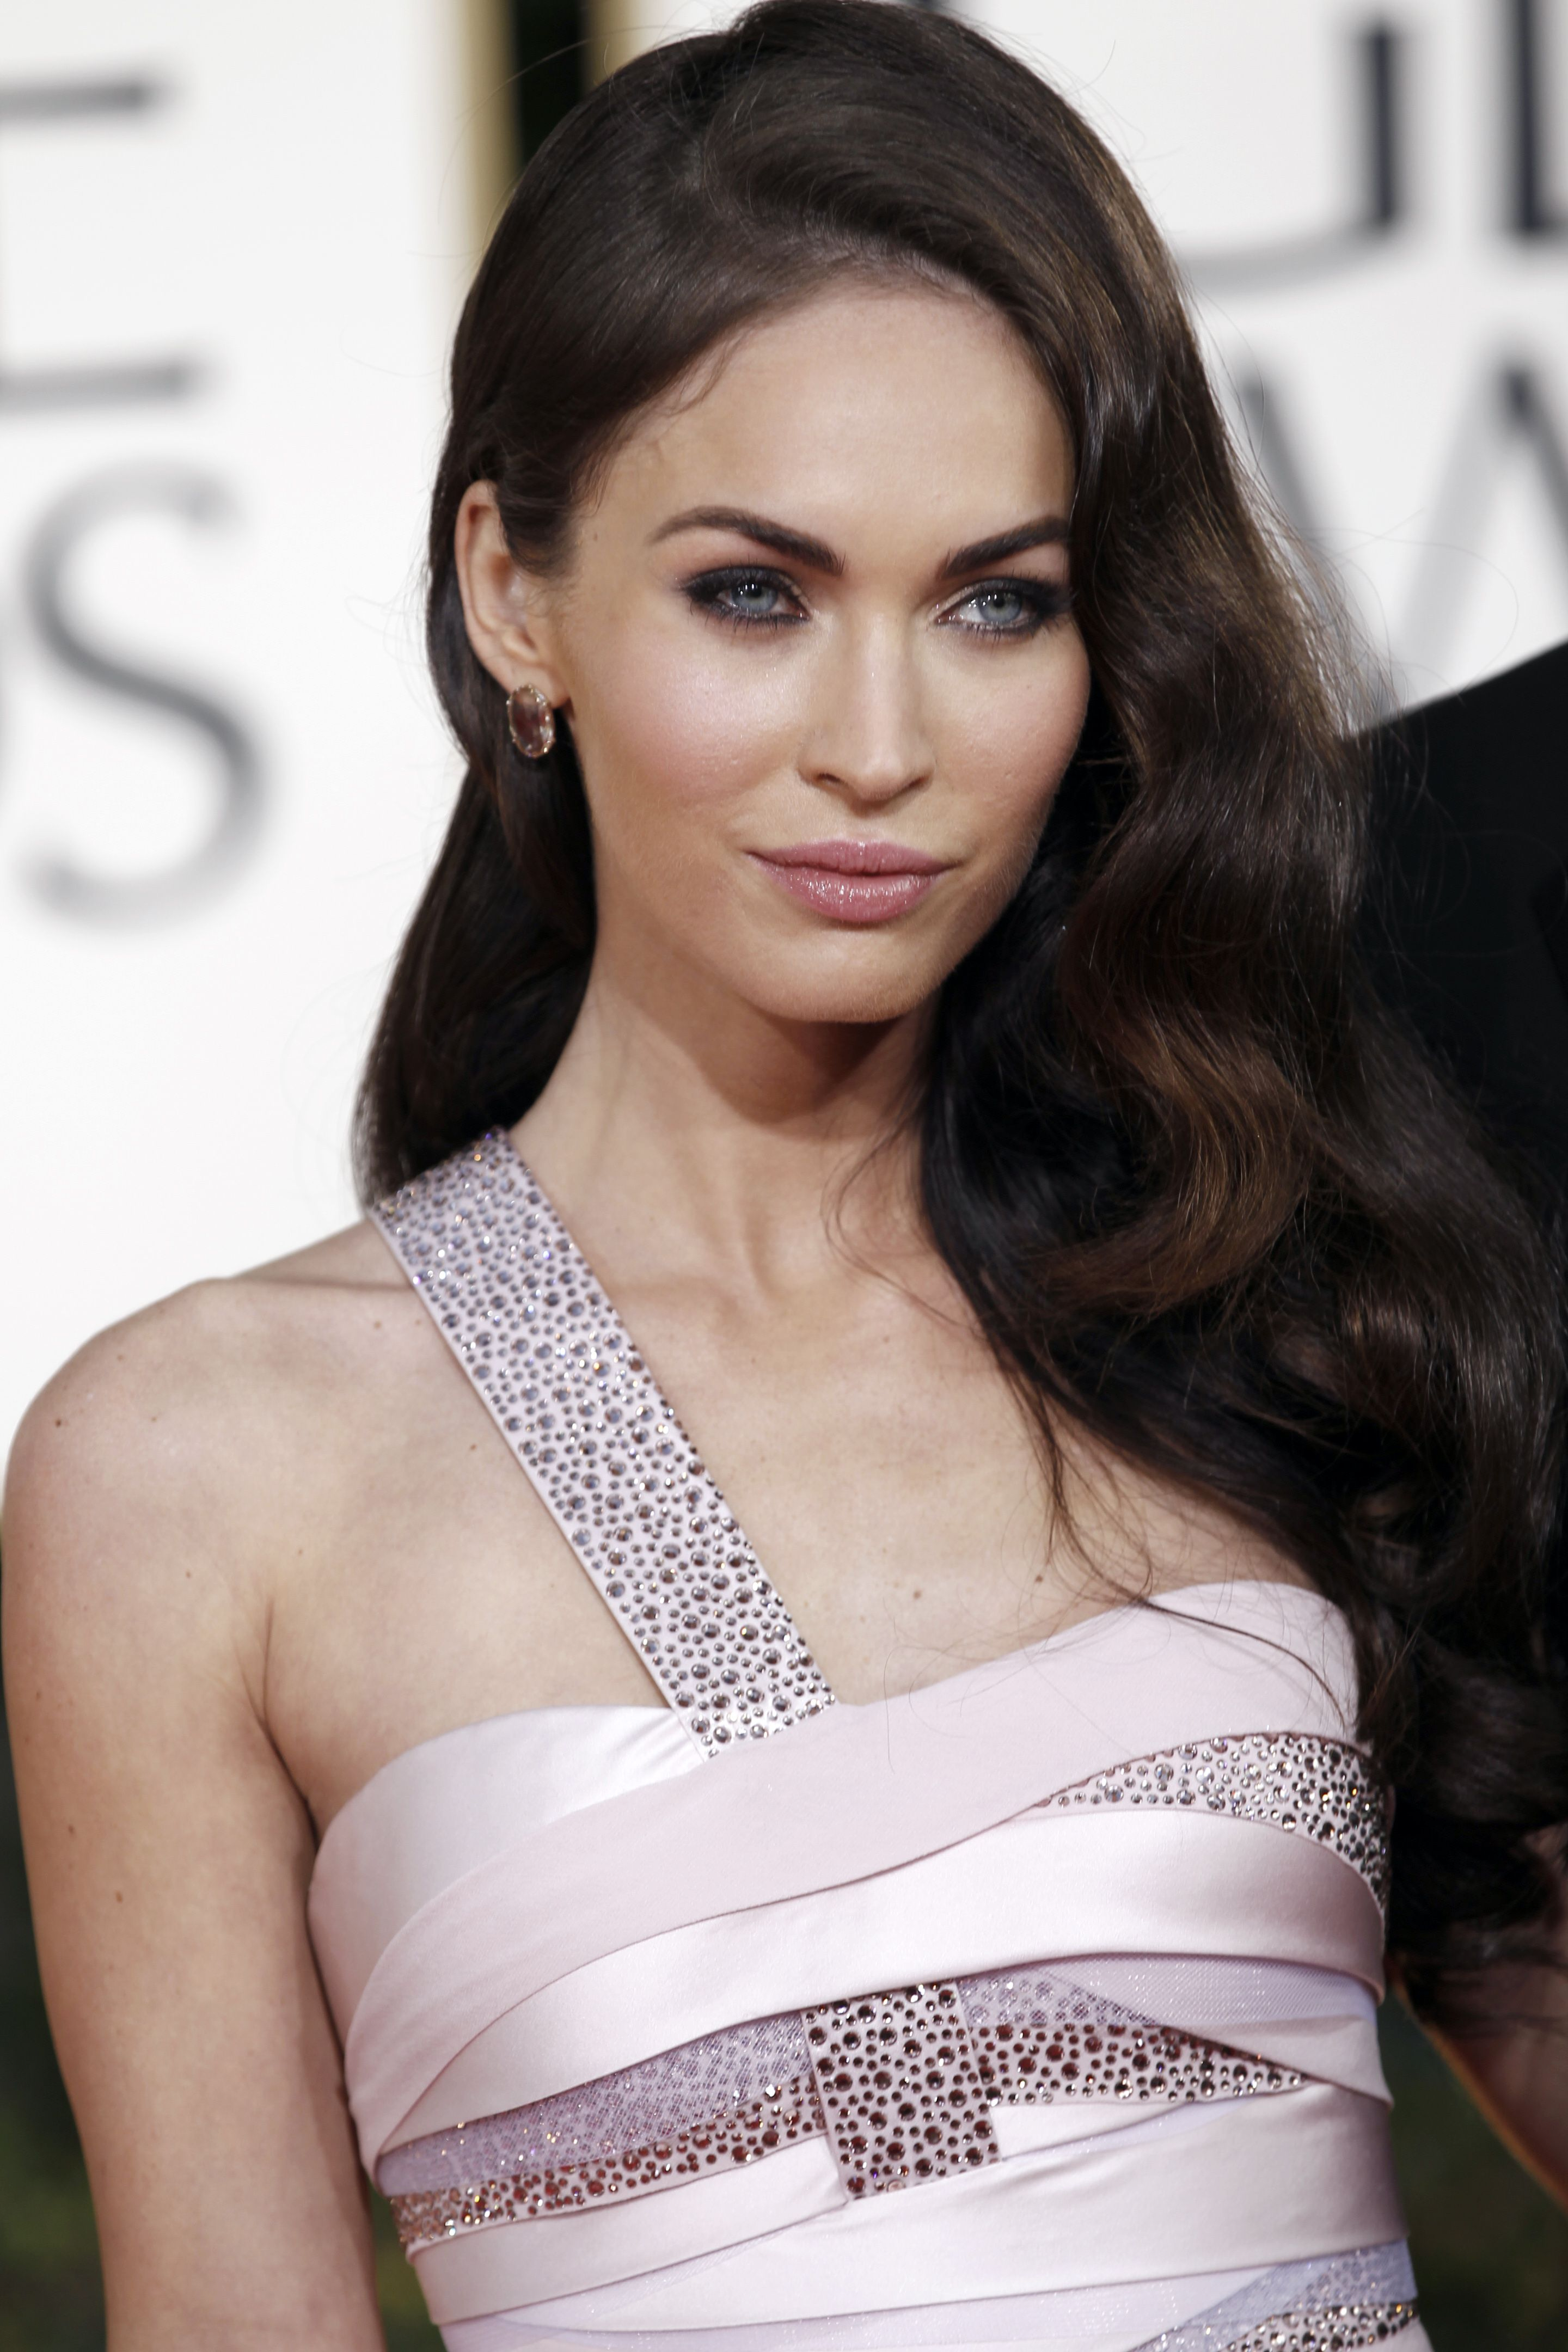 Megan Fox Threatens To Sue Over Naked Pictures